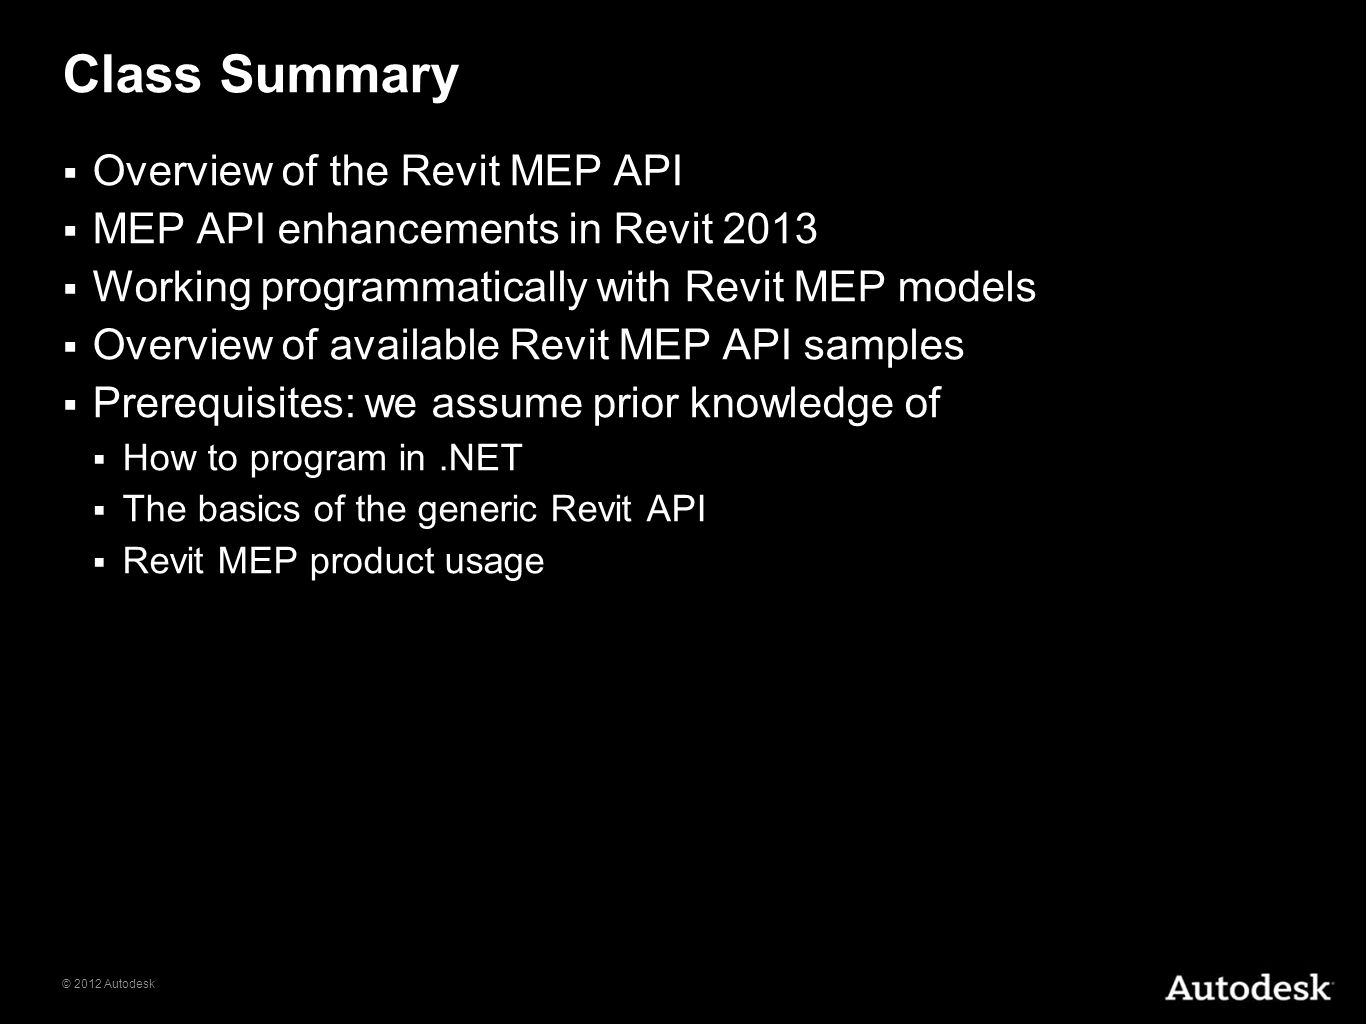 © 2012 Autodesk Class Summary Overview of the Revit MEP API MEP API enhancements in Revit 2013 Working programmatically with Revit MEP models Overview